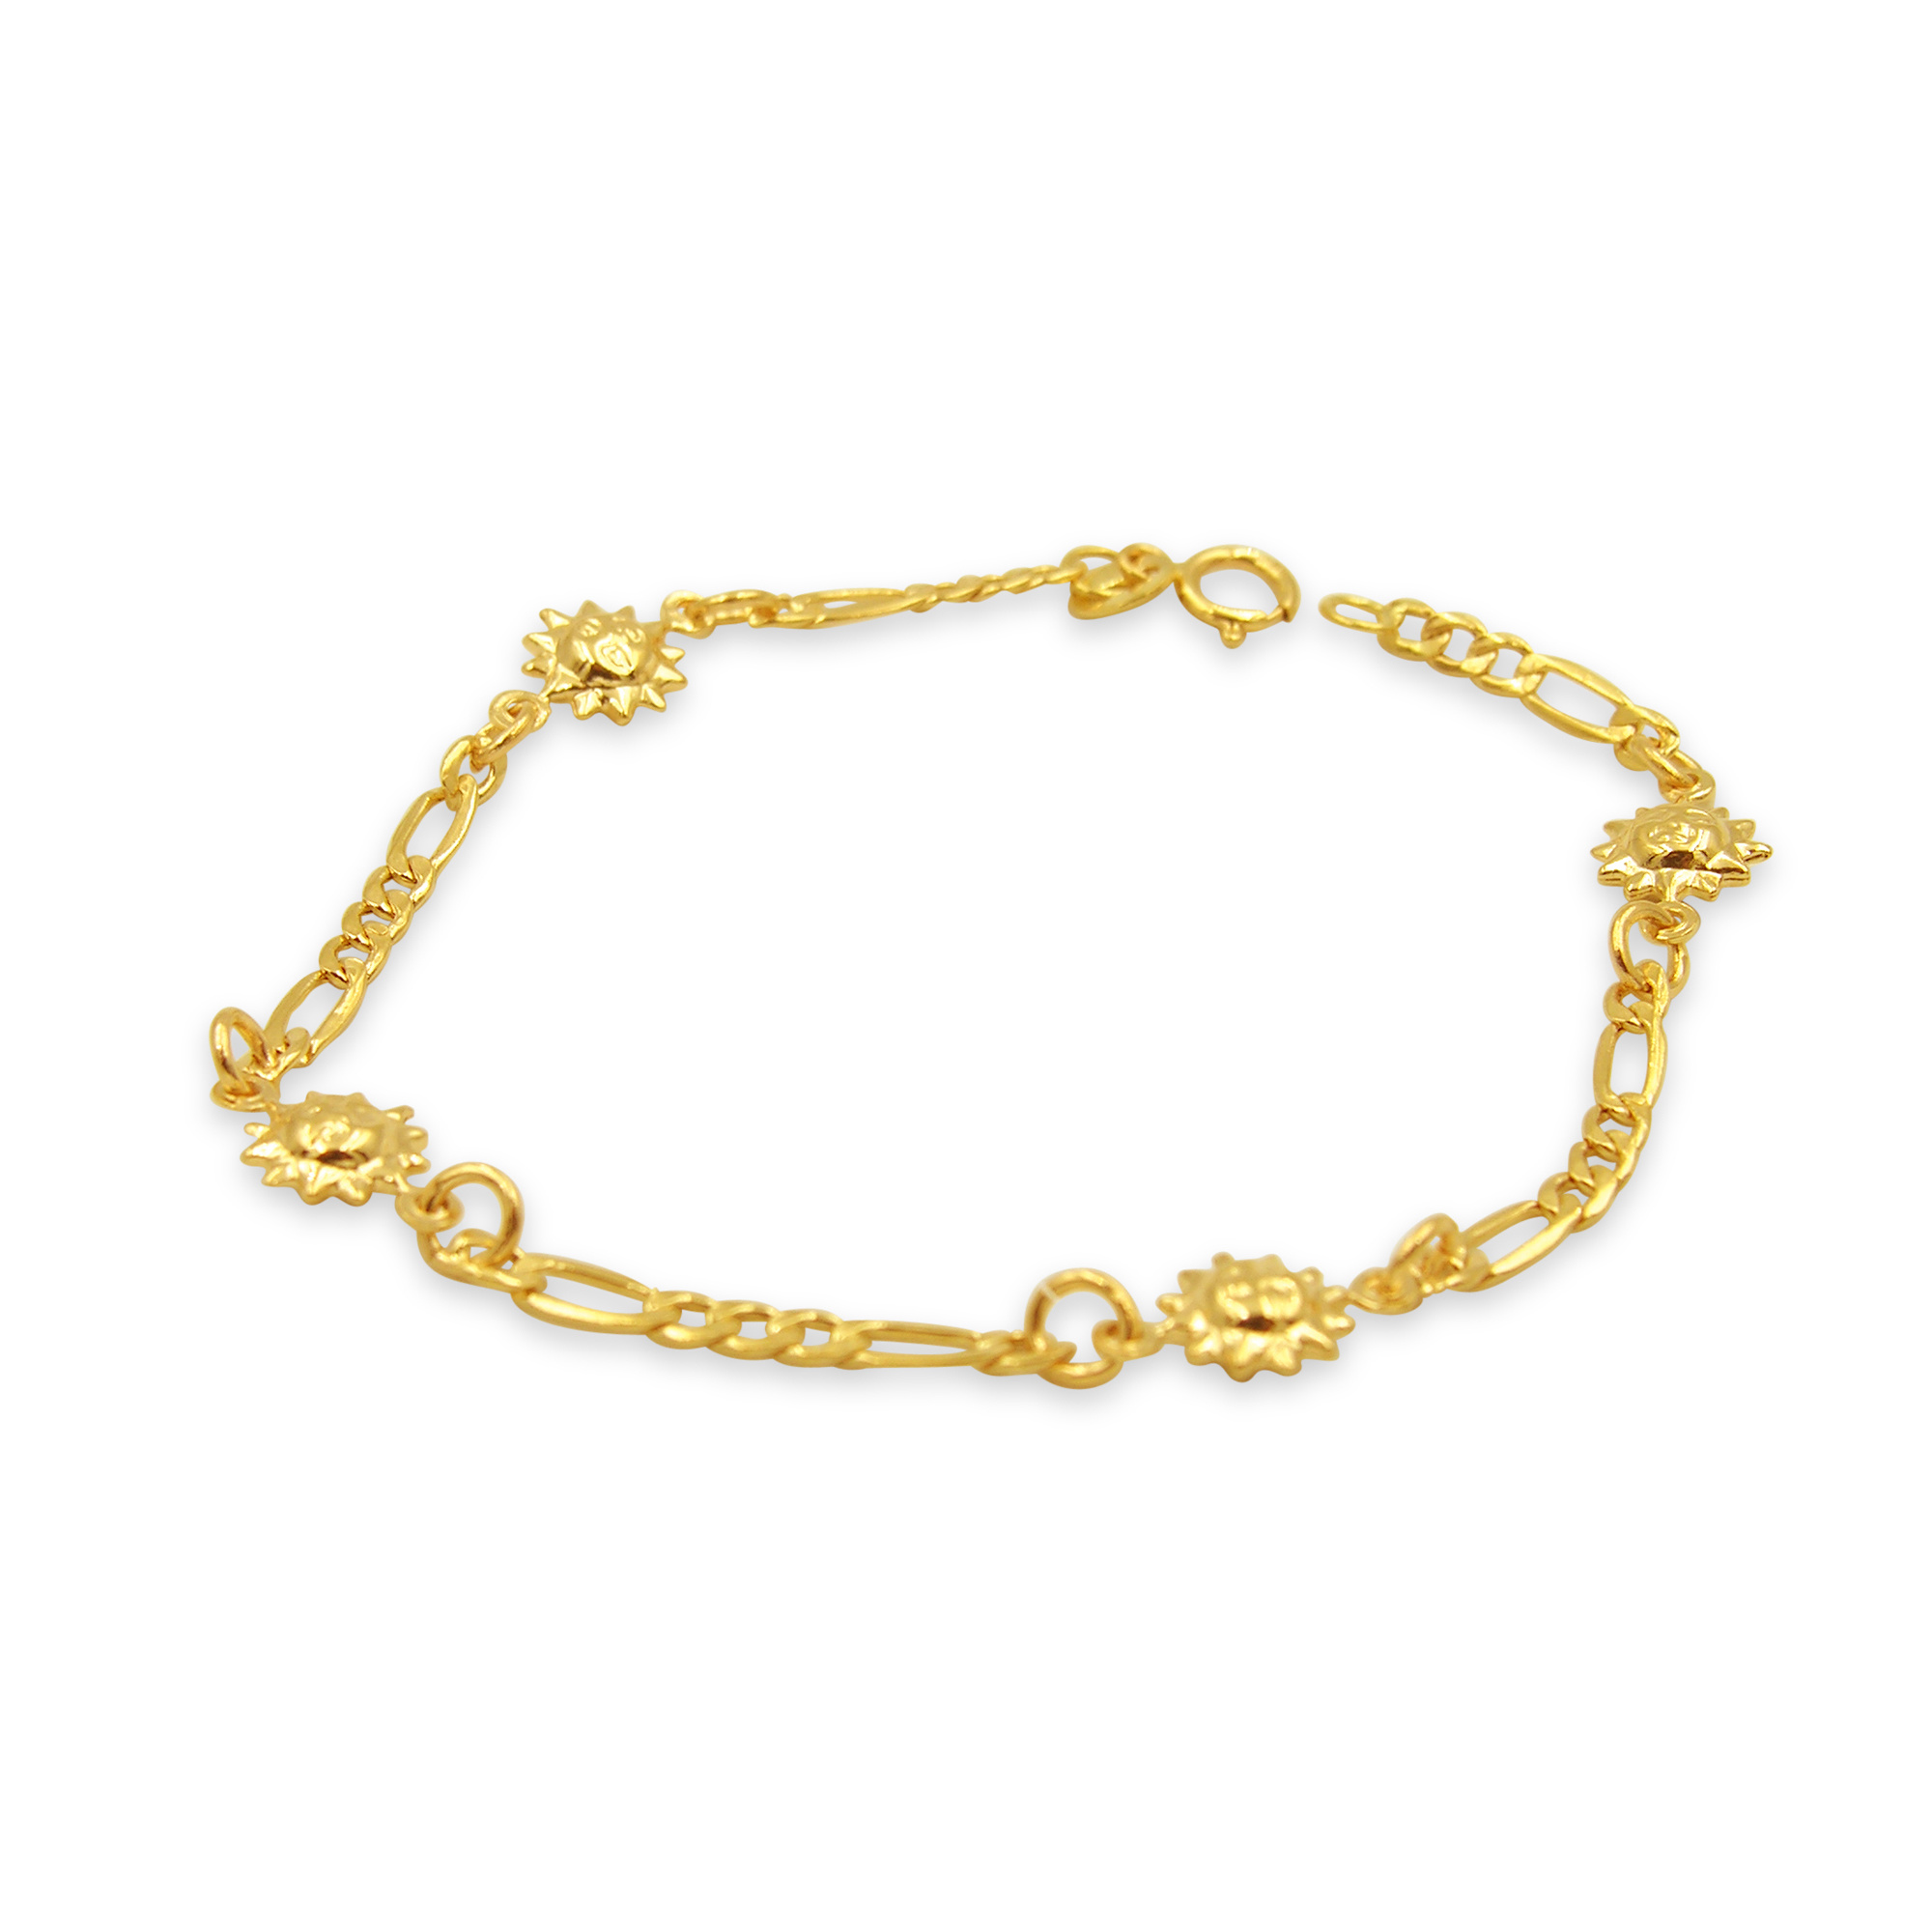 18 kt yellow gold charm bracelet with sun